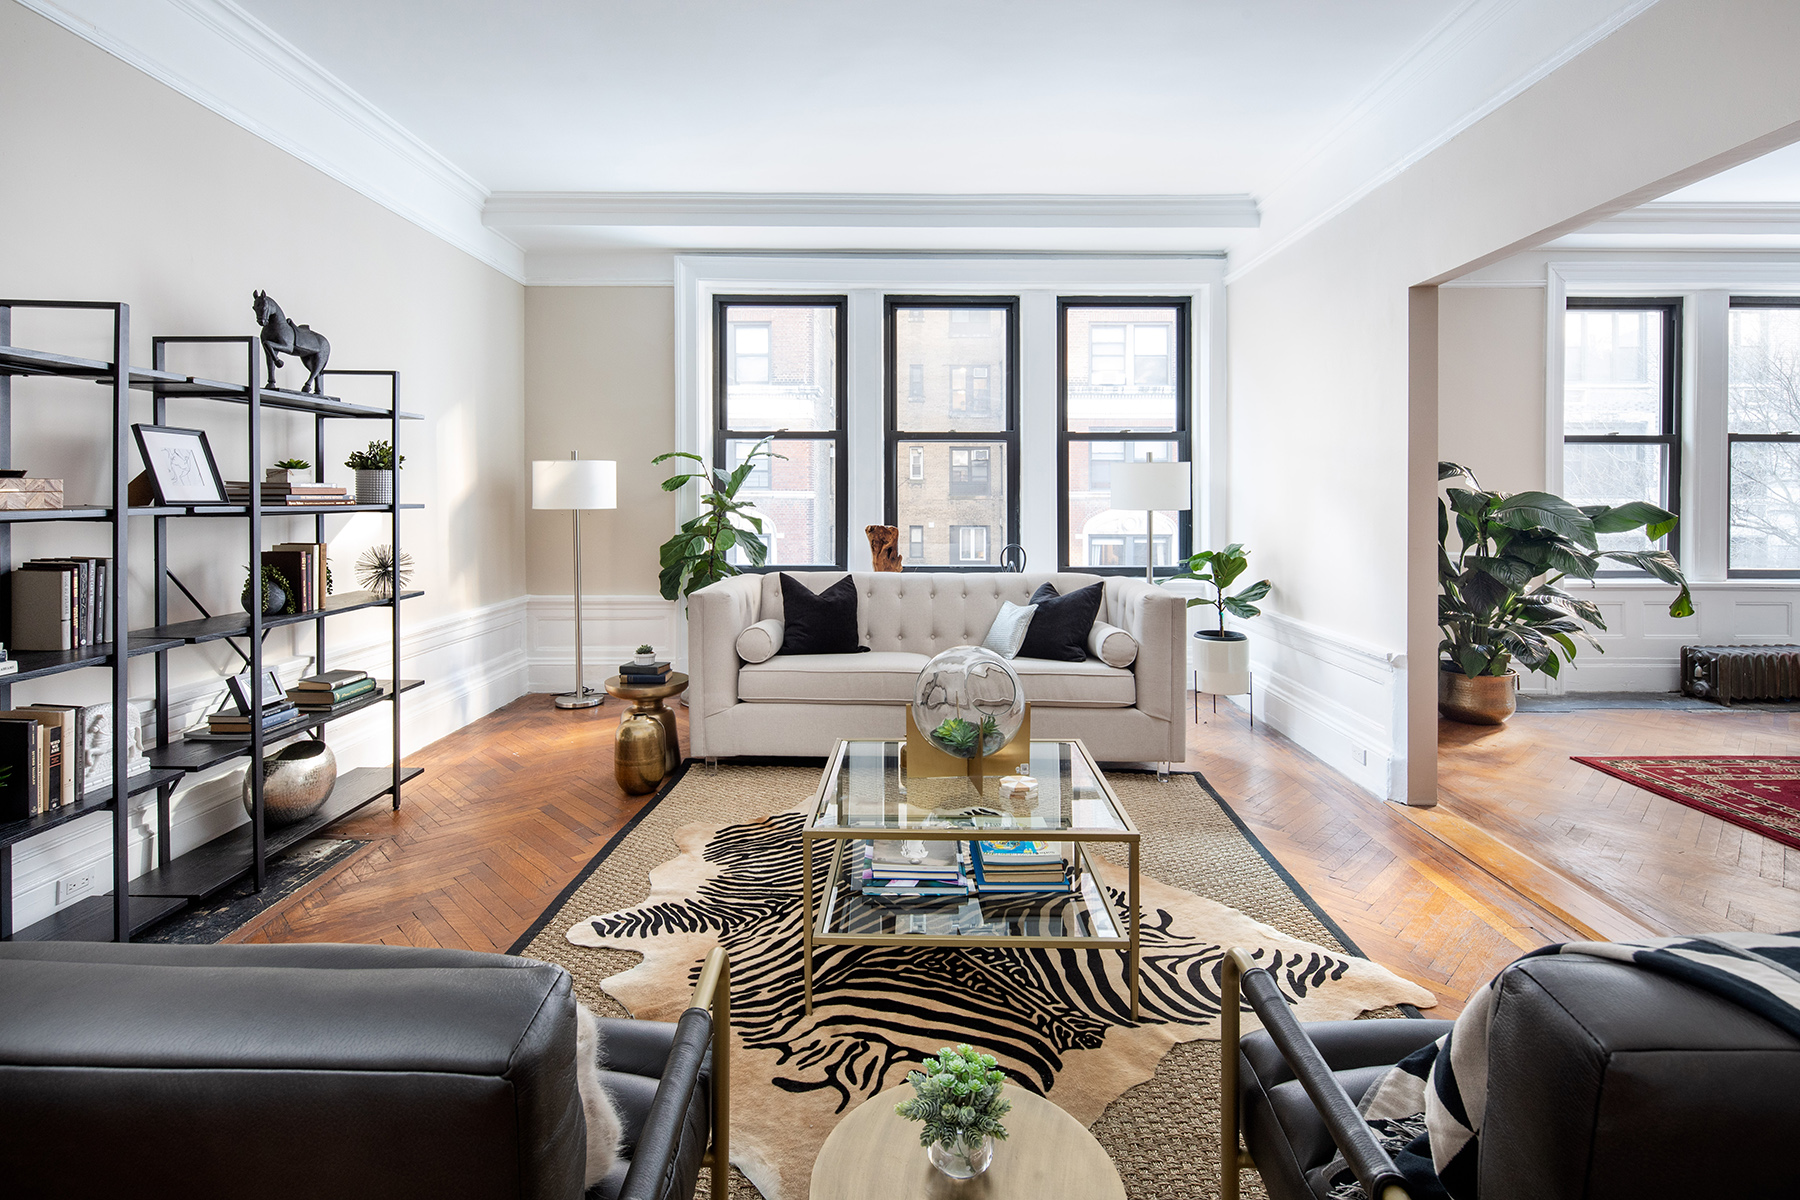 A living room with three windows, a beige couch, a large rug, a glass coffee table, and two leather chairs.